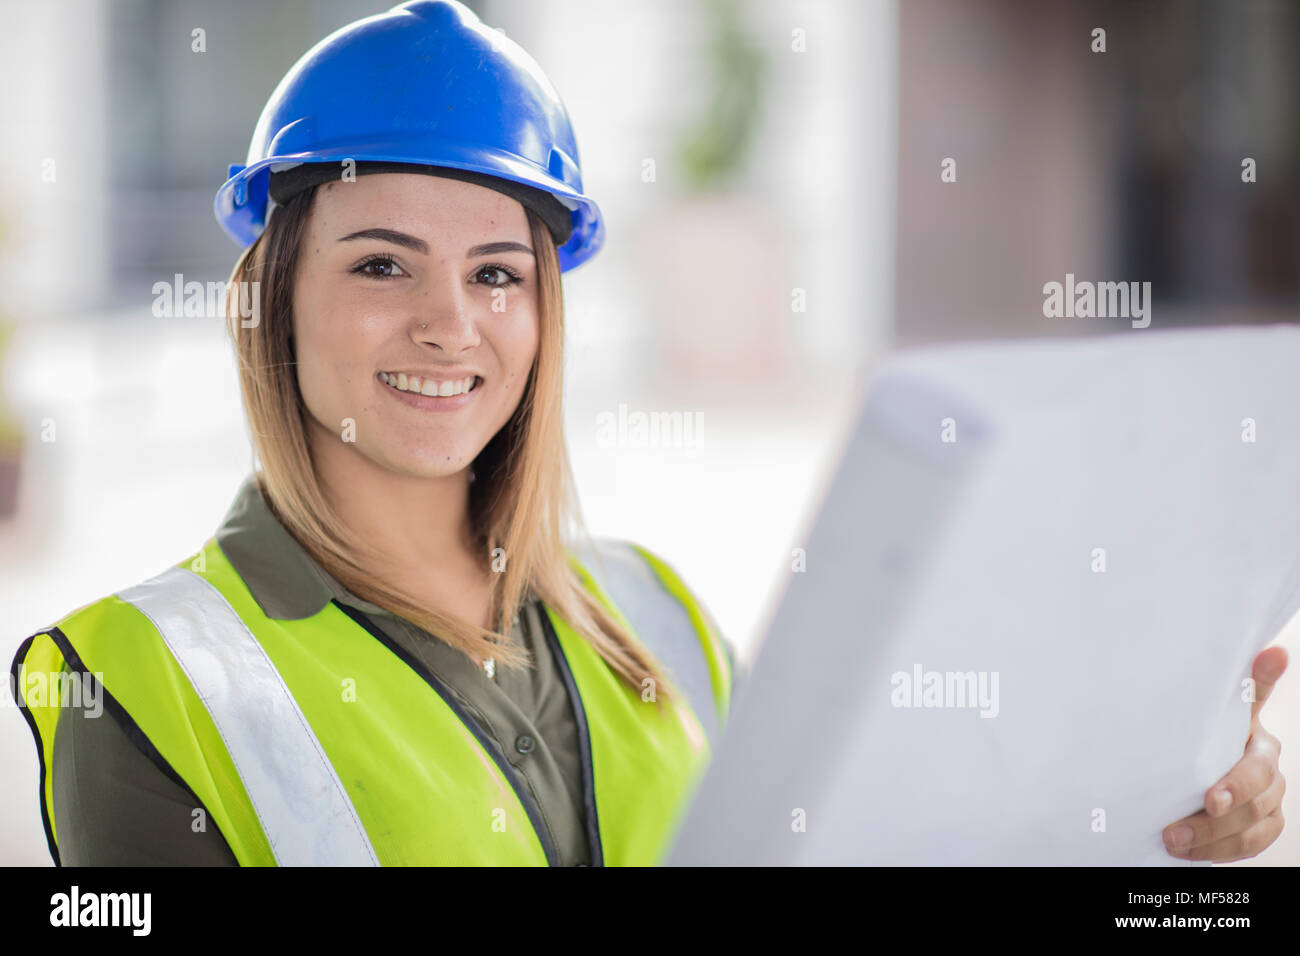 Portrait of smiling woman wearing hard hat and reflective jacket holding plan - Stock Image